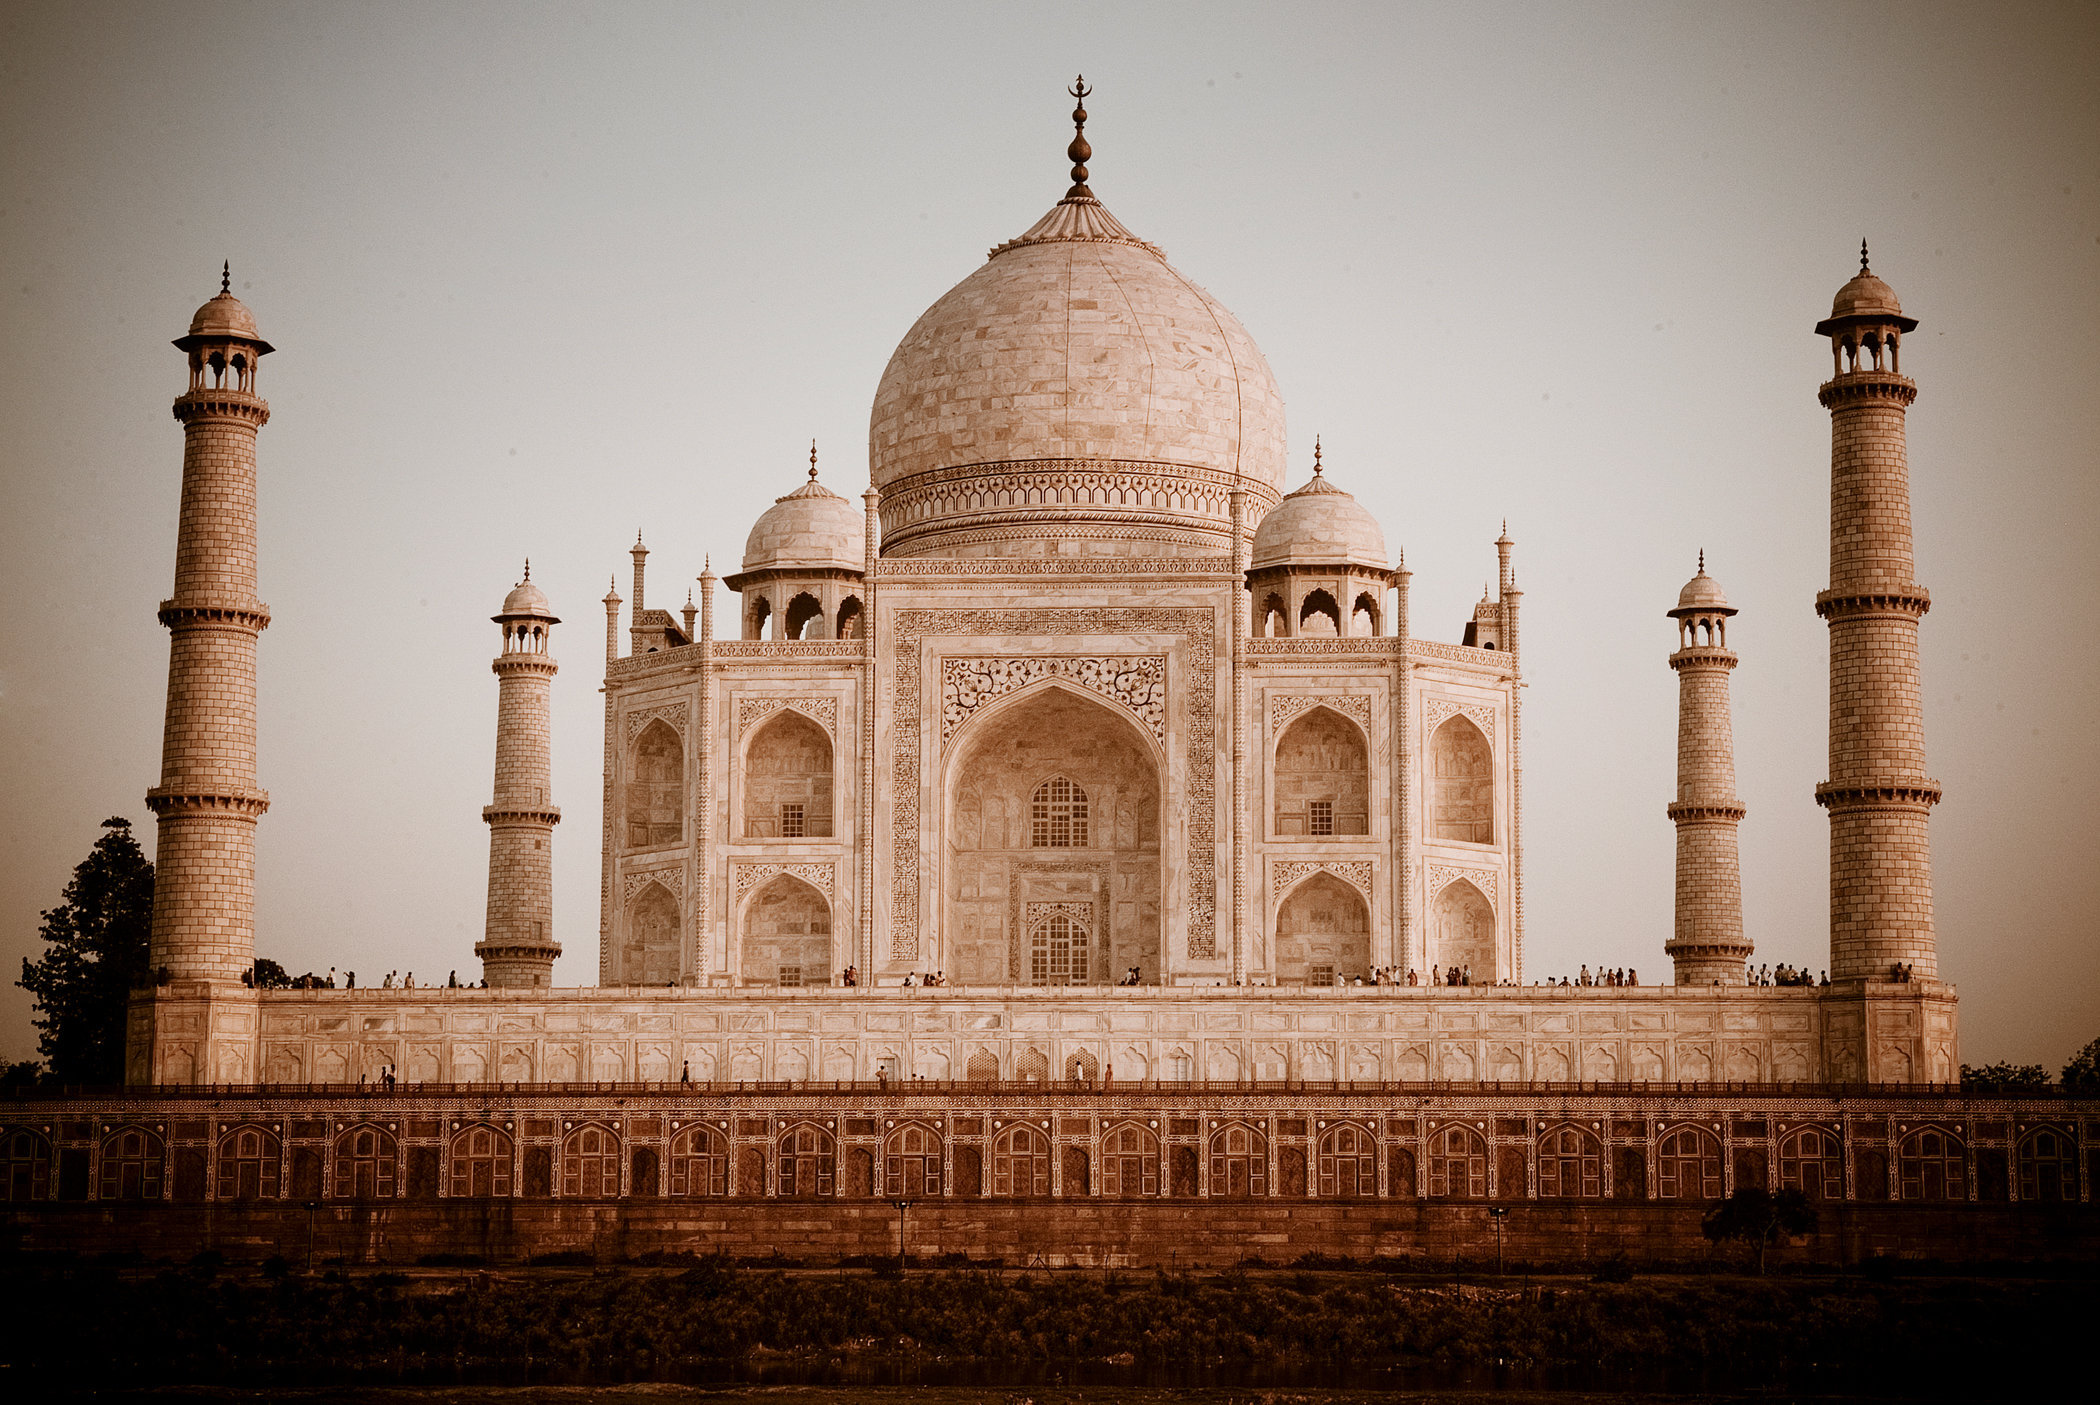 The Taj Mahal III